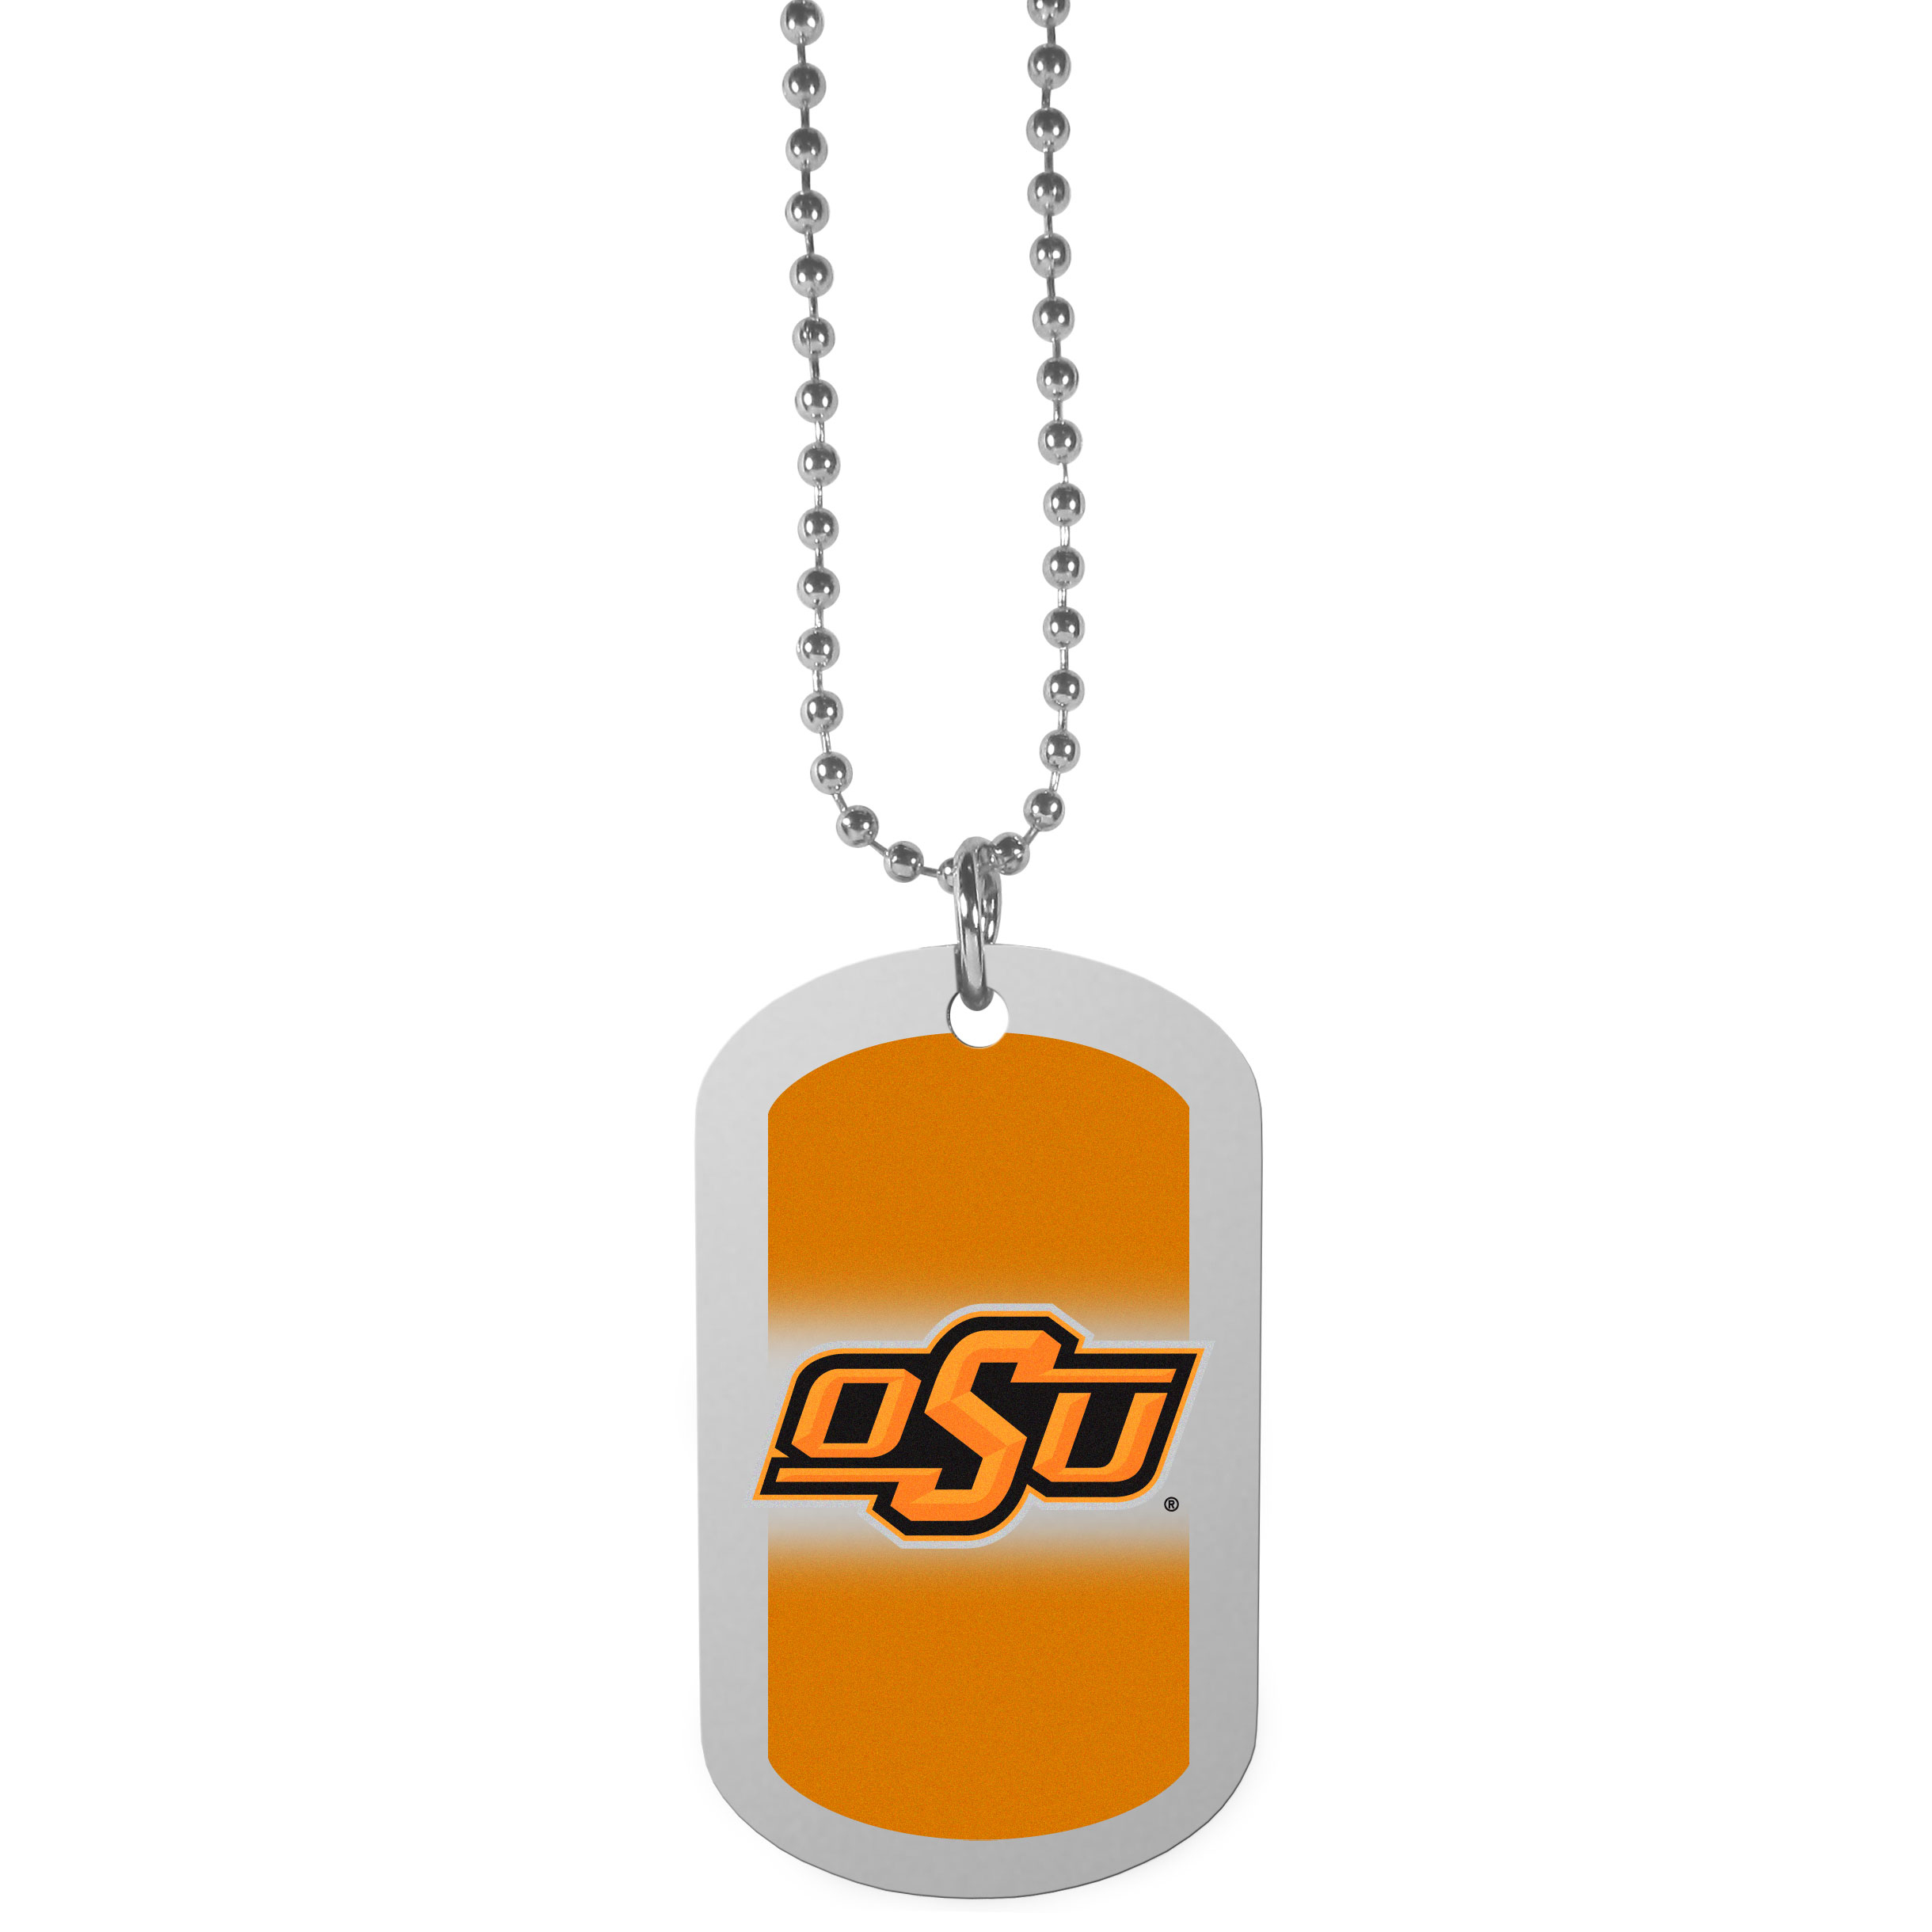 Oklahoma St. Cowboys Team Tag Necklace - Dog tag necklaces are a fashion statement that is here to stay. The sporty version of the classic tag features a gradient print in team colors featuring a full color team logo over a high polish tag to create a bold and sporty look. The tag comes on a 26 inch ball chain with a ball and joint clasp. Any Oklahoma St. Cowboys would be proud to wear this attractive fashion accessory.